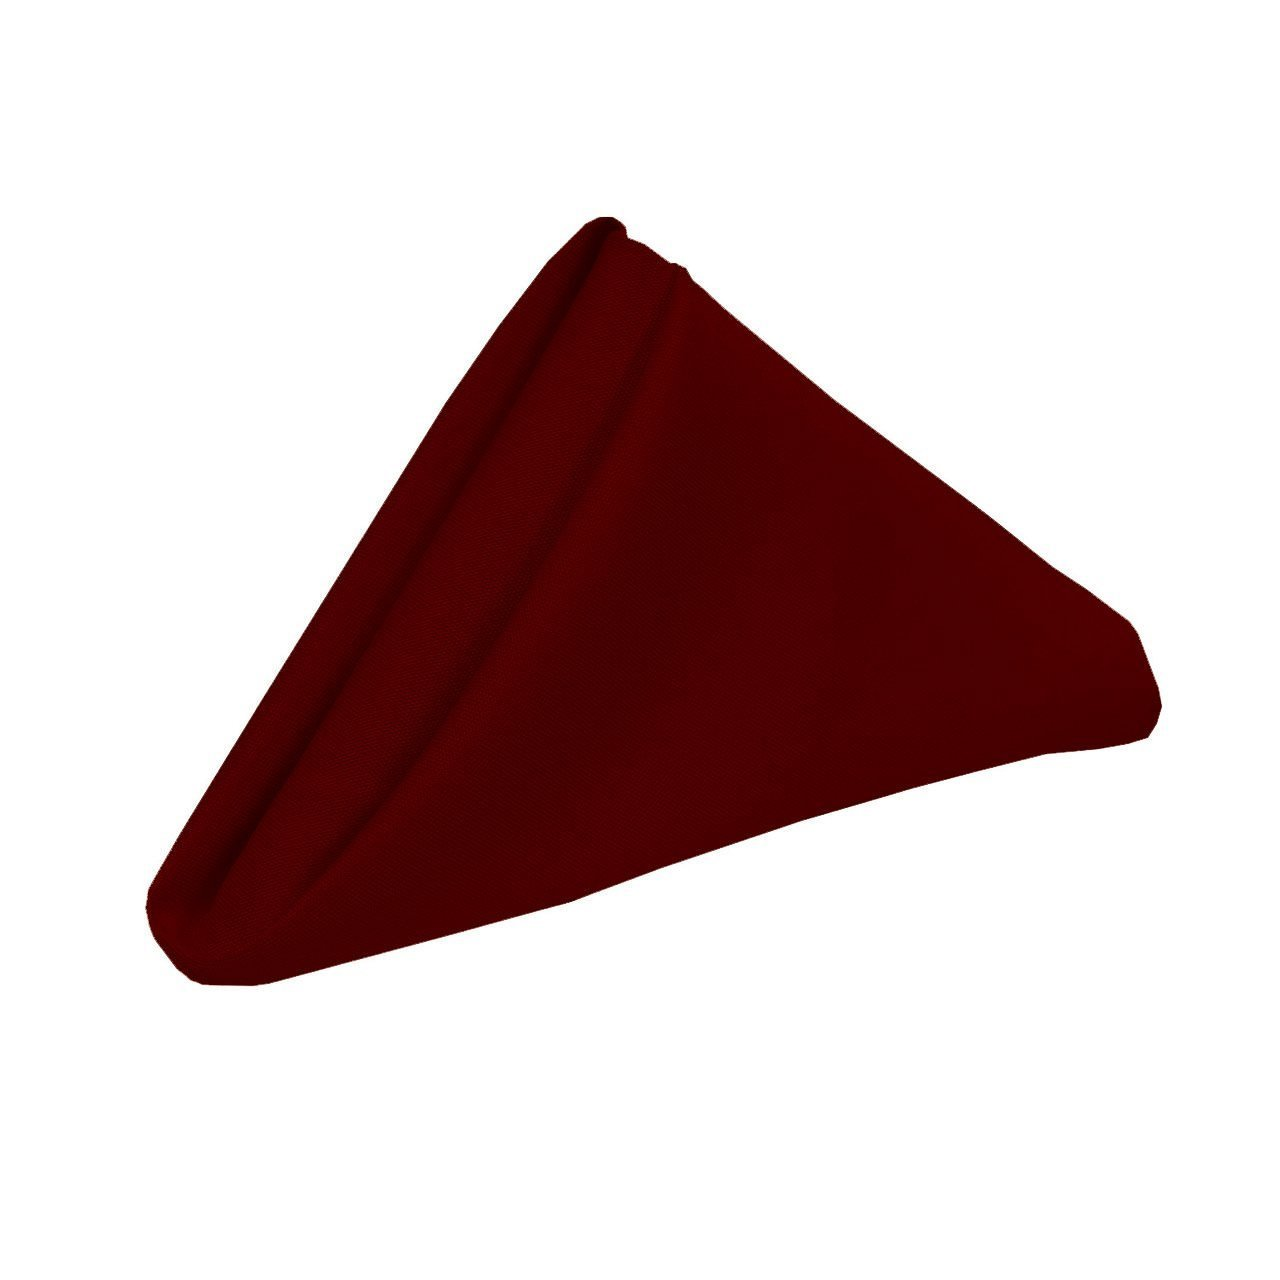 12 x 12 inch Cloth Dinner Table Napkins Restaurant//Wedding//Hotel Quality and Regular Home Use 100/% Cotton Fabric KP Linen Pack of 10 Machine Washable Burgundy